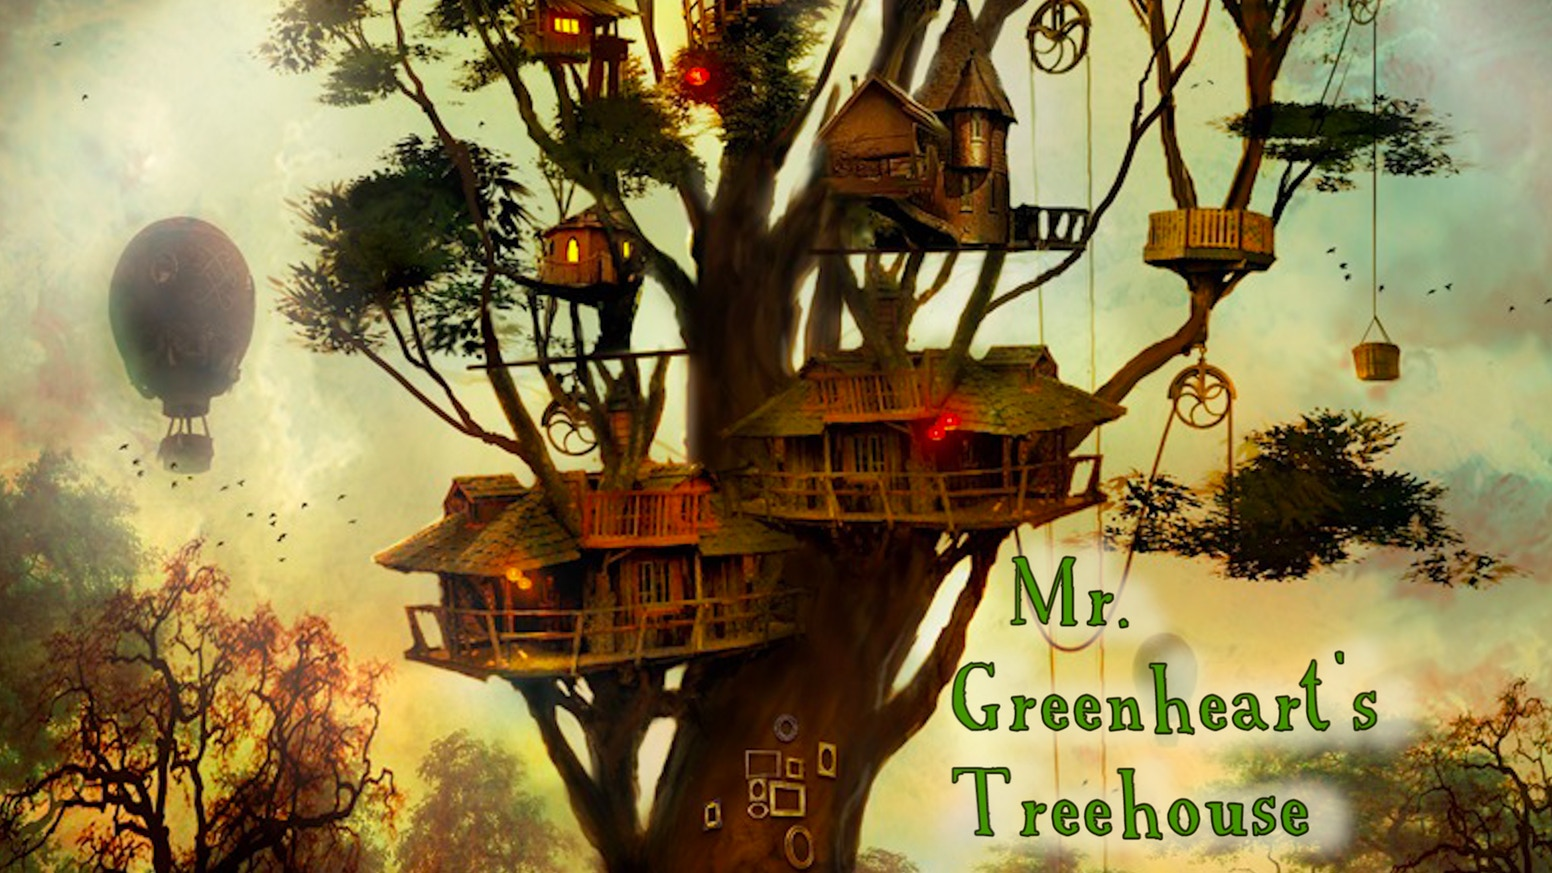 FINAL HOURS!! Mr. Green's Treehouse - Family TV Show by Jefe ... on robert rodriguez designer, cabin designer, kitchen designer, wedding designer, studio designer, target designer, outdoor designer, safari designer, party designer, tent designer,